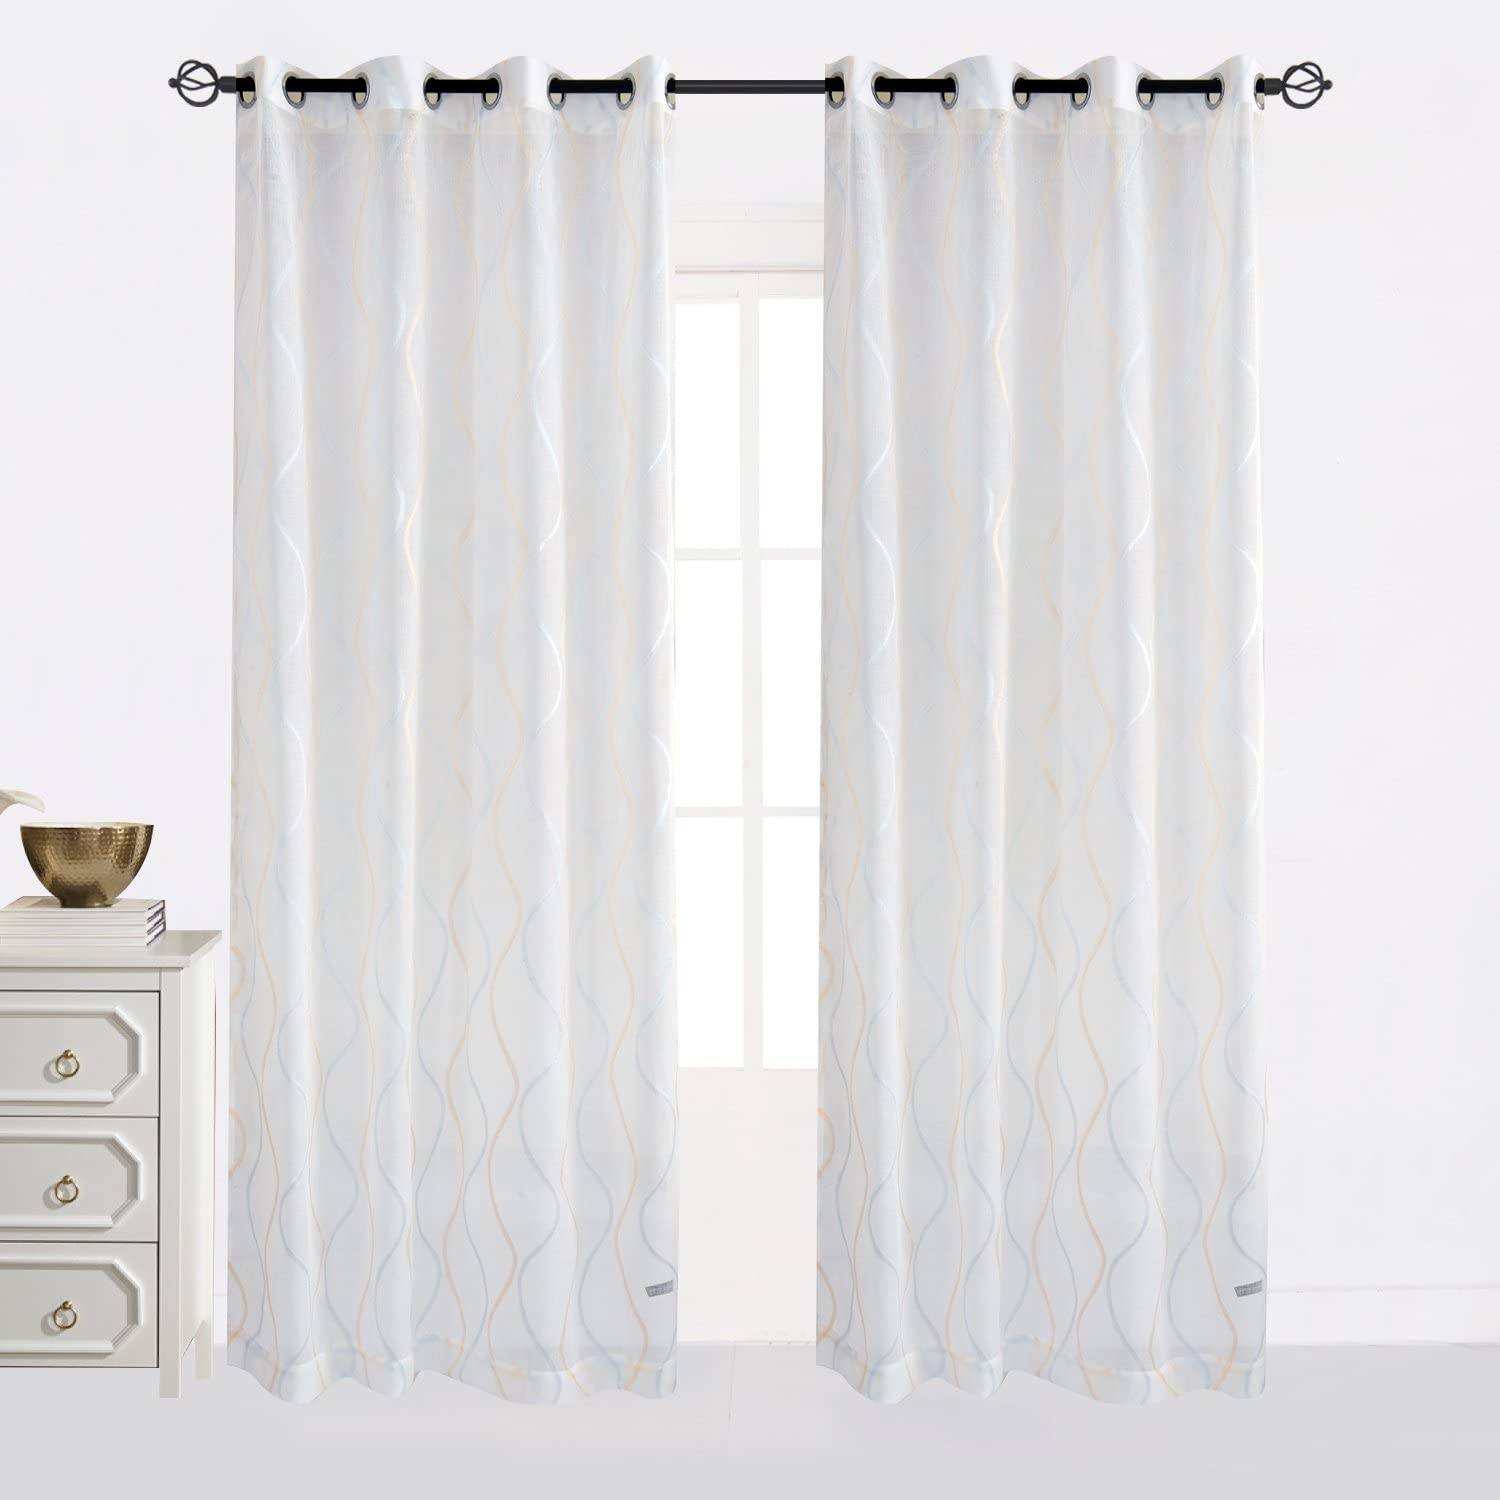 Cheery Home Wave Sheer Curtains Voile Panels Drapes Top Grommet for Living Room,Width 52 Inch by 84 Inch Length,Blue and Gold